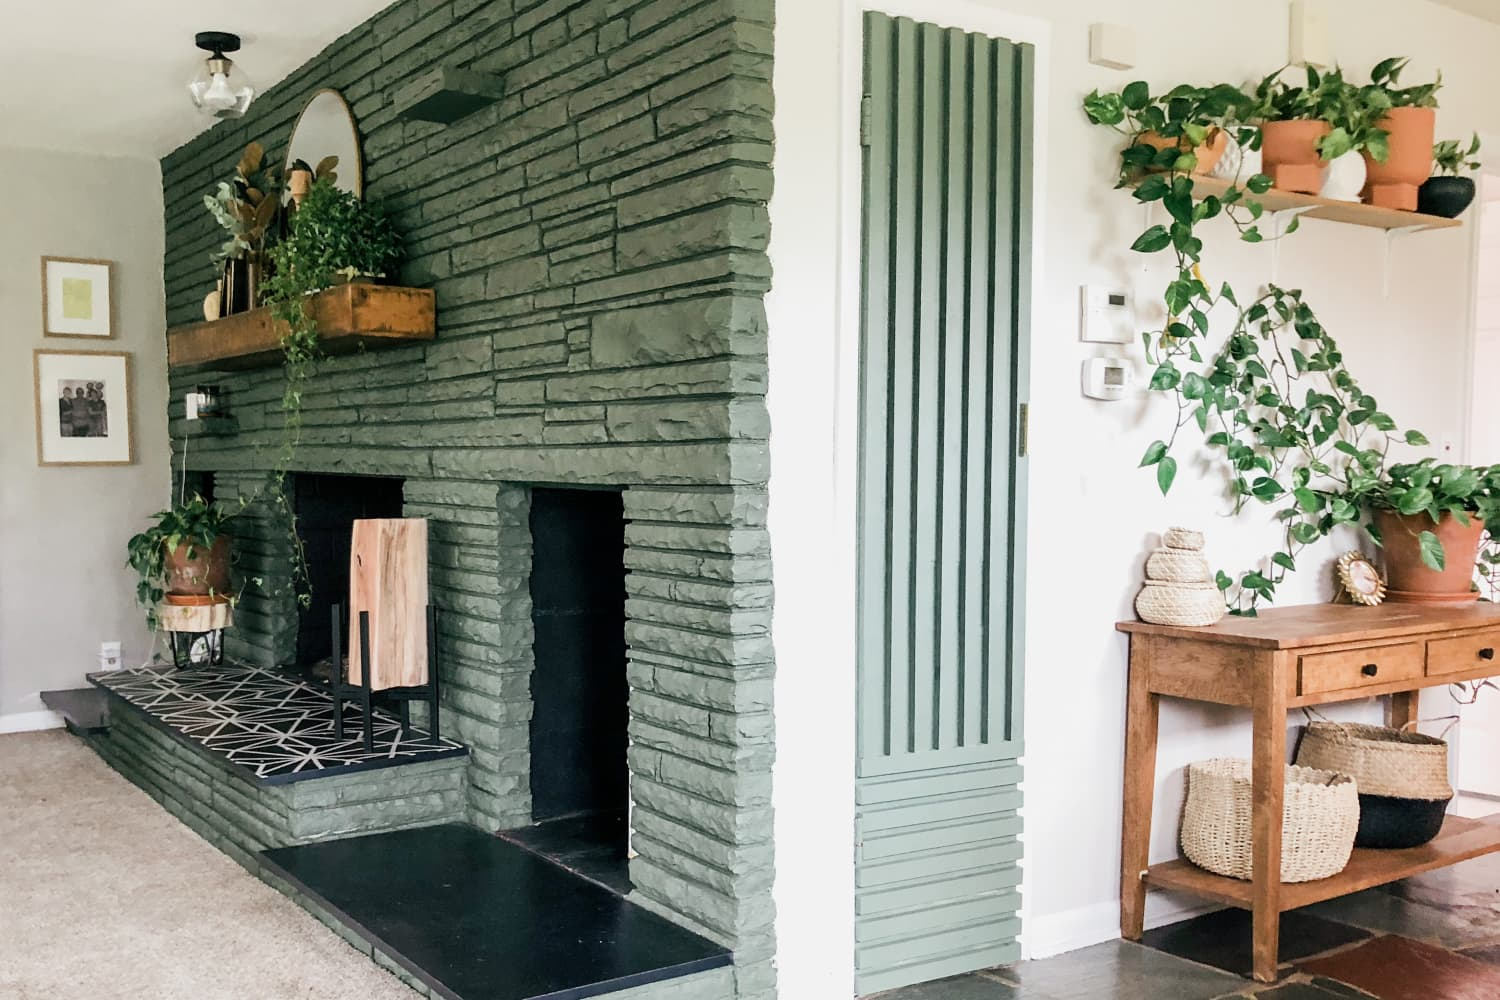 This Outdated House Is Becoming a Dream Home One DIY Project (and Houseplant) at a Time